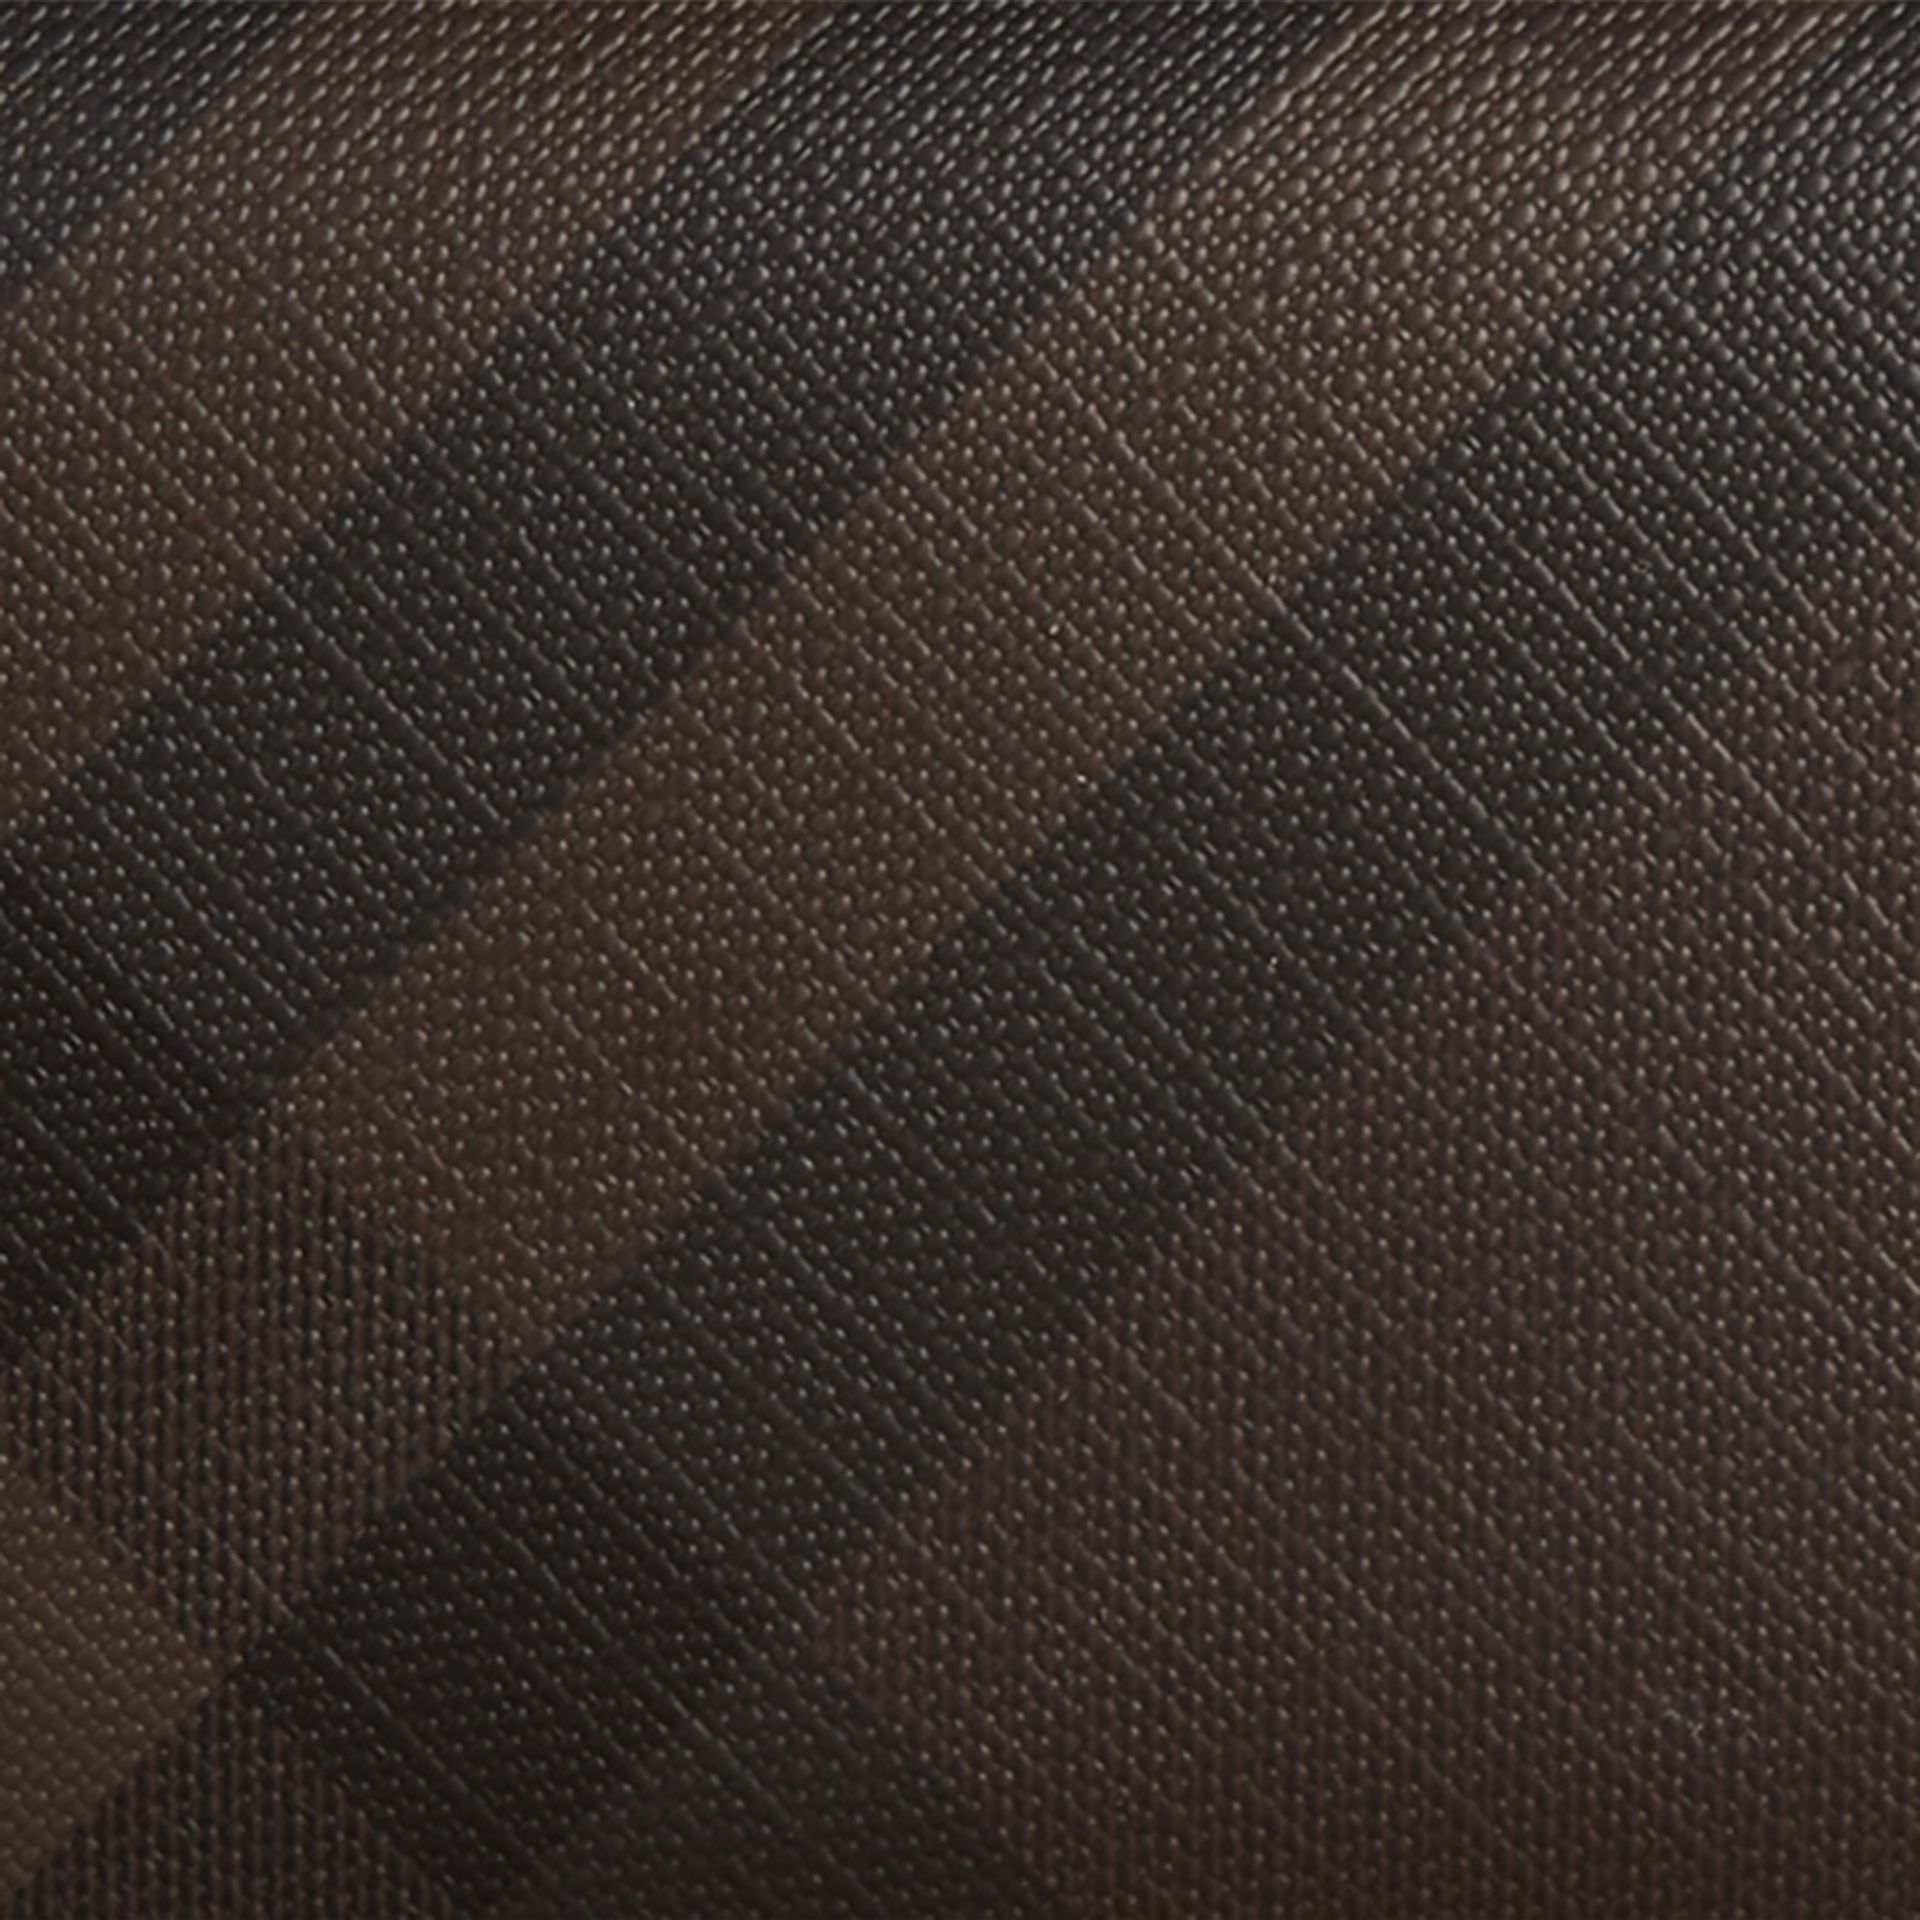 Portefeuille continental en tissu London check et cuir (Chocolat/noir) - Homme | Burberry - photo de la galerie 2